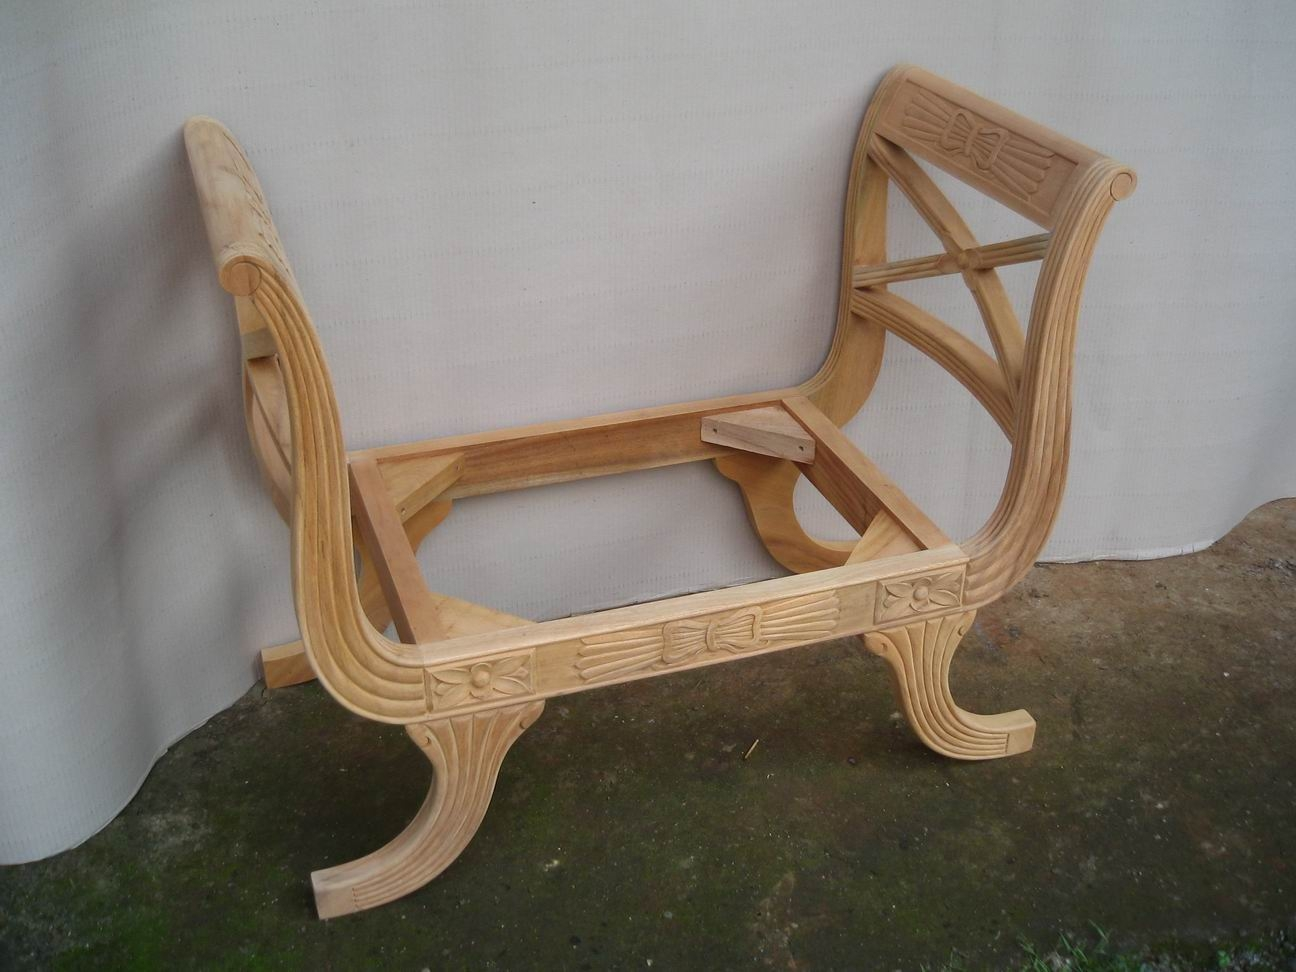 Very Impressive portraiture of Furniture Wooden frame stool mahogany supplier jepara furniture wooden  with #684C35 color and 1296x972 pixels